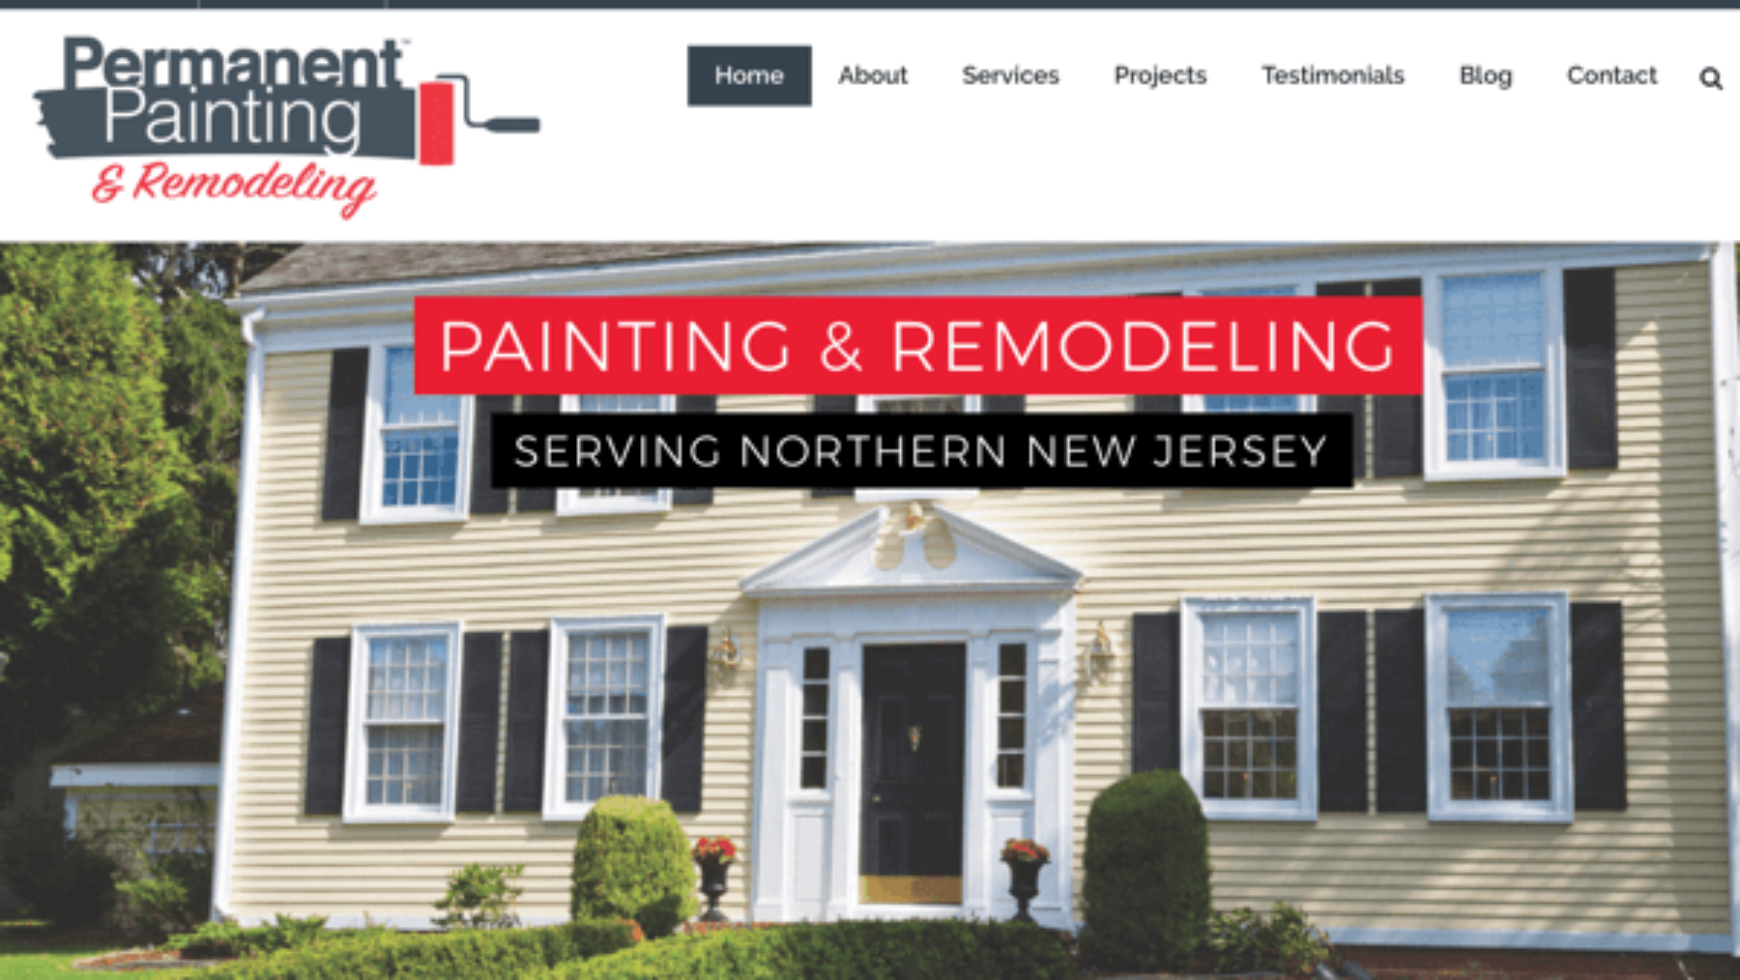 Permanent Painting Website – Northern New Jersey